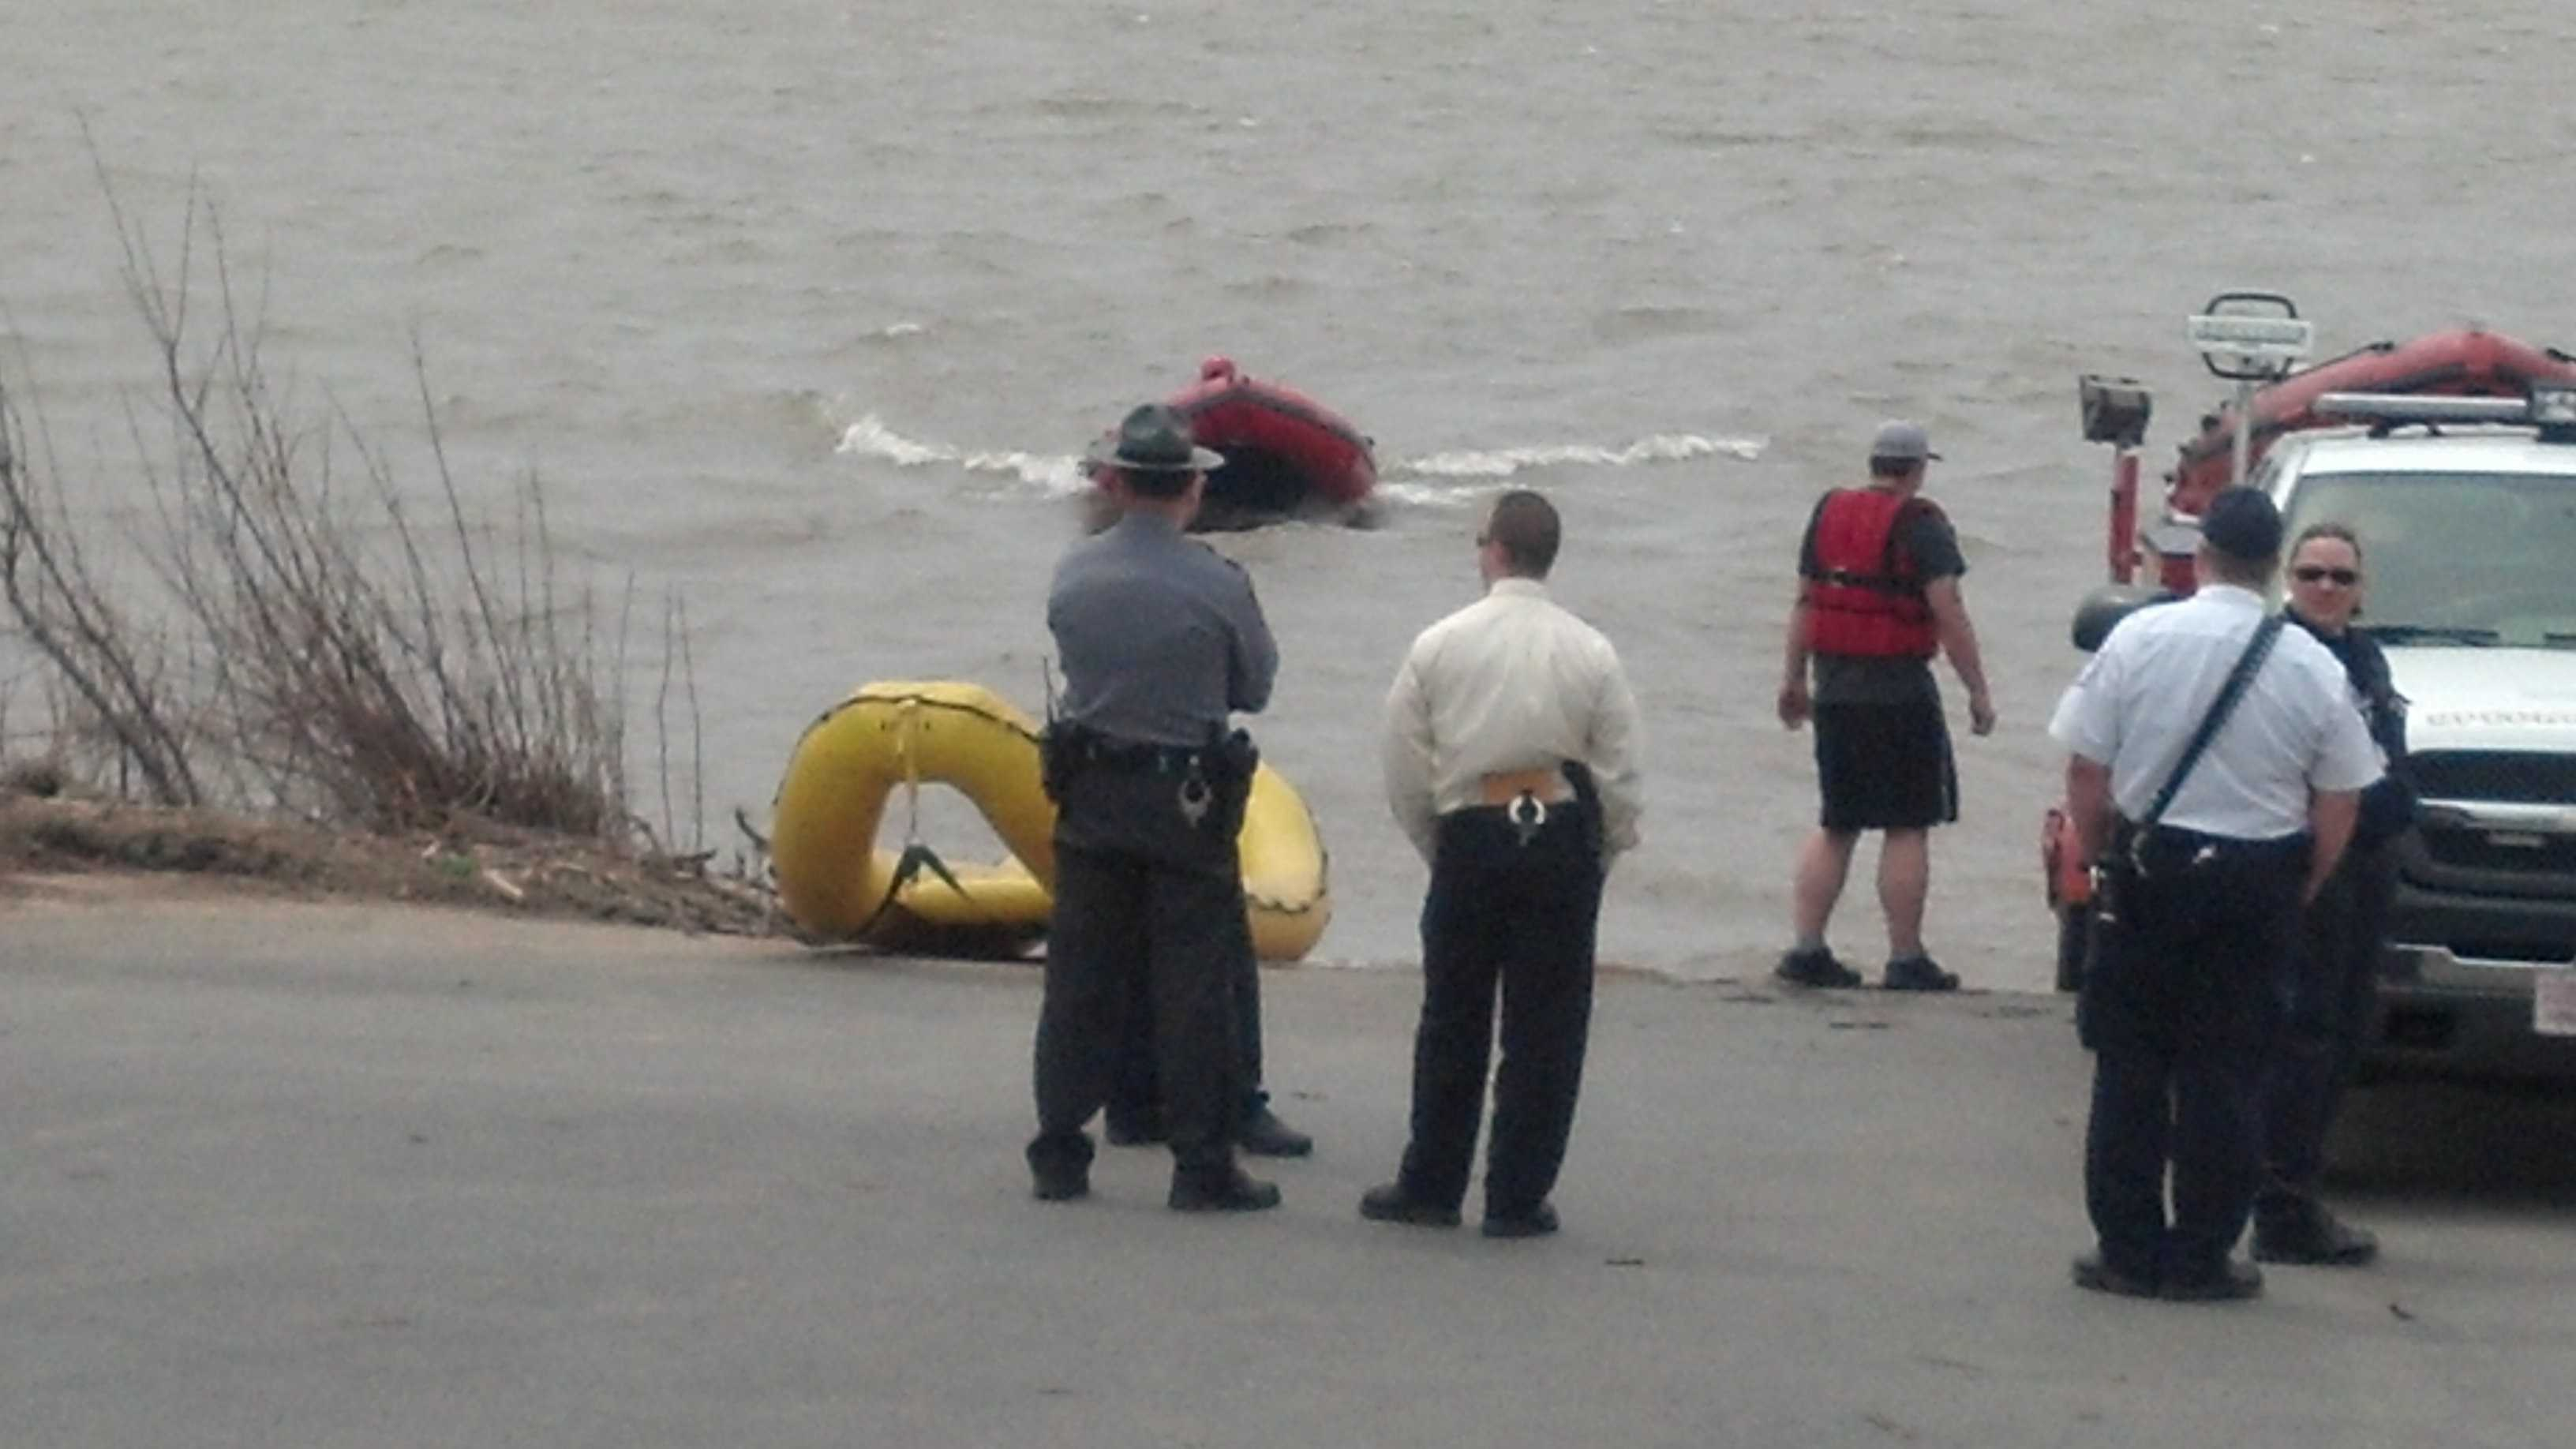 Police on the scene in Middle Paxton Twp., Dauphin County after a fisherman found a body in the Susquehanna River.